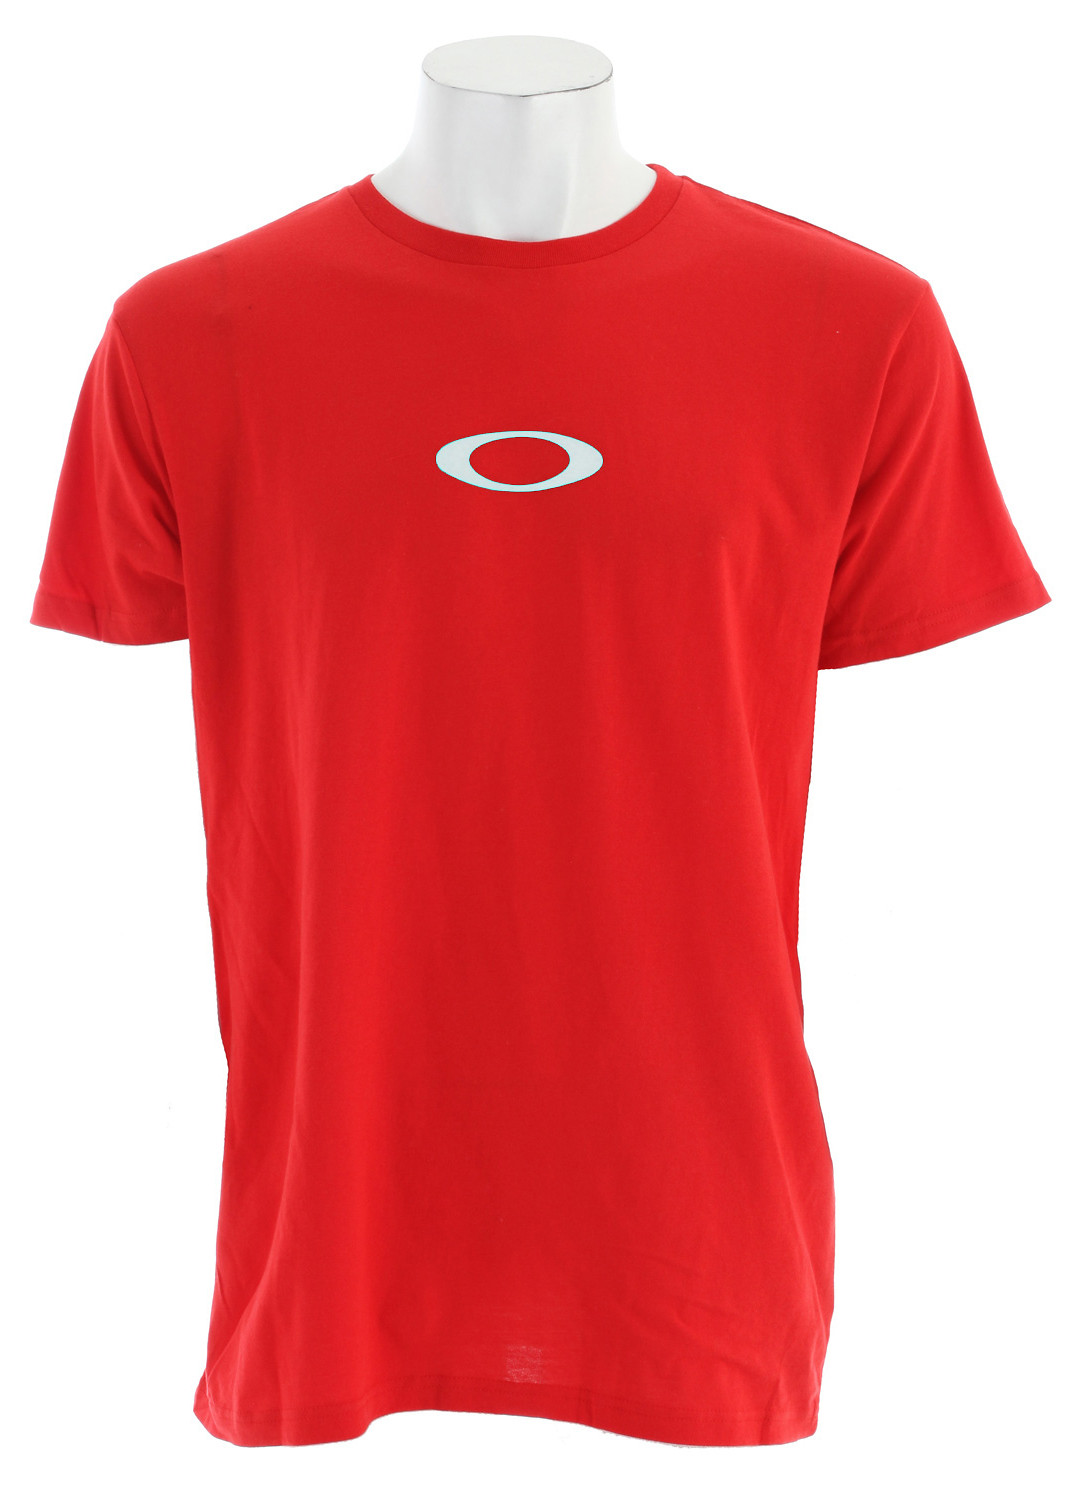 oakley-icon-28-tee-red-line-whtlogo-11